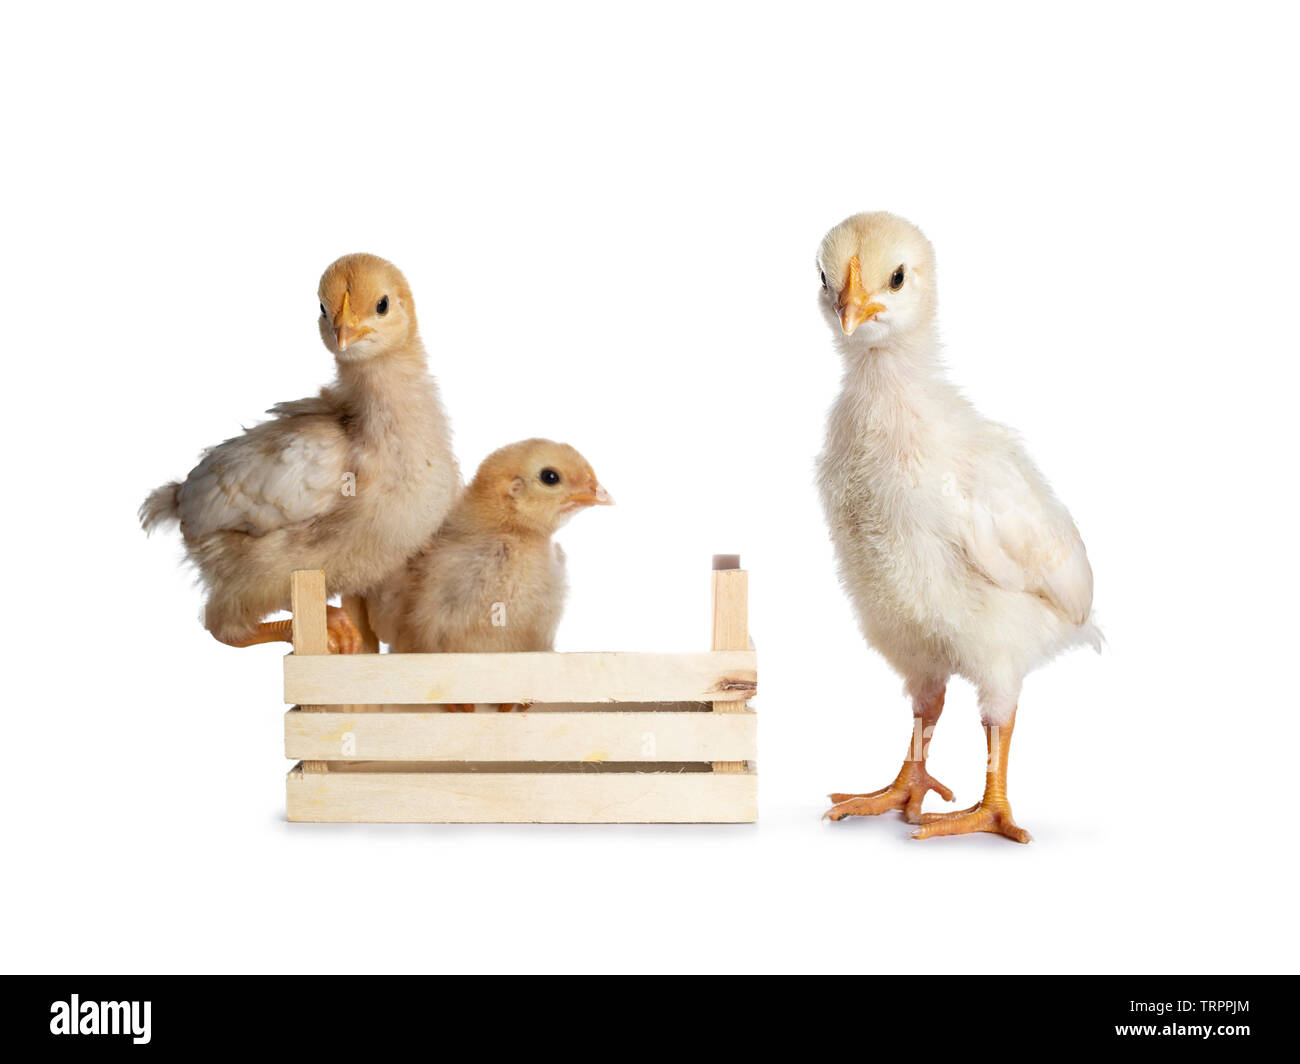 Group of 3 baby chicks. Two sitting in and on edge of little crate. One standing cheeky in front.  Isolated on white background. All looking to photog Stock Photo